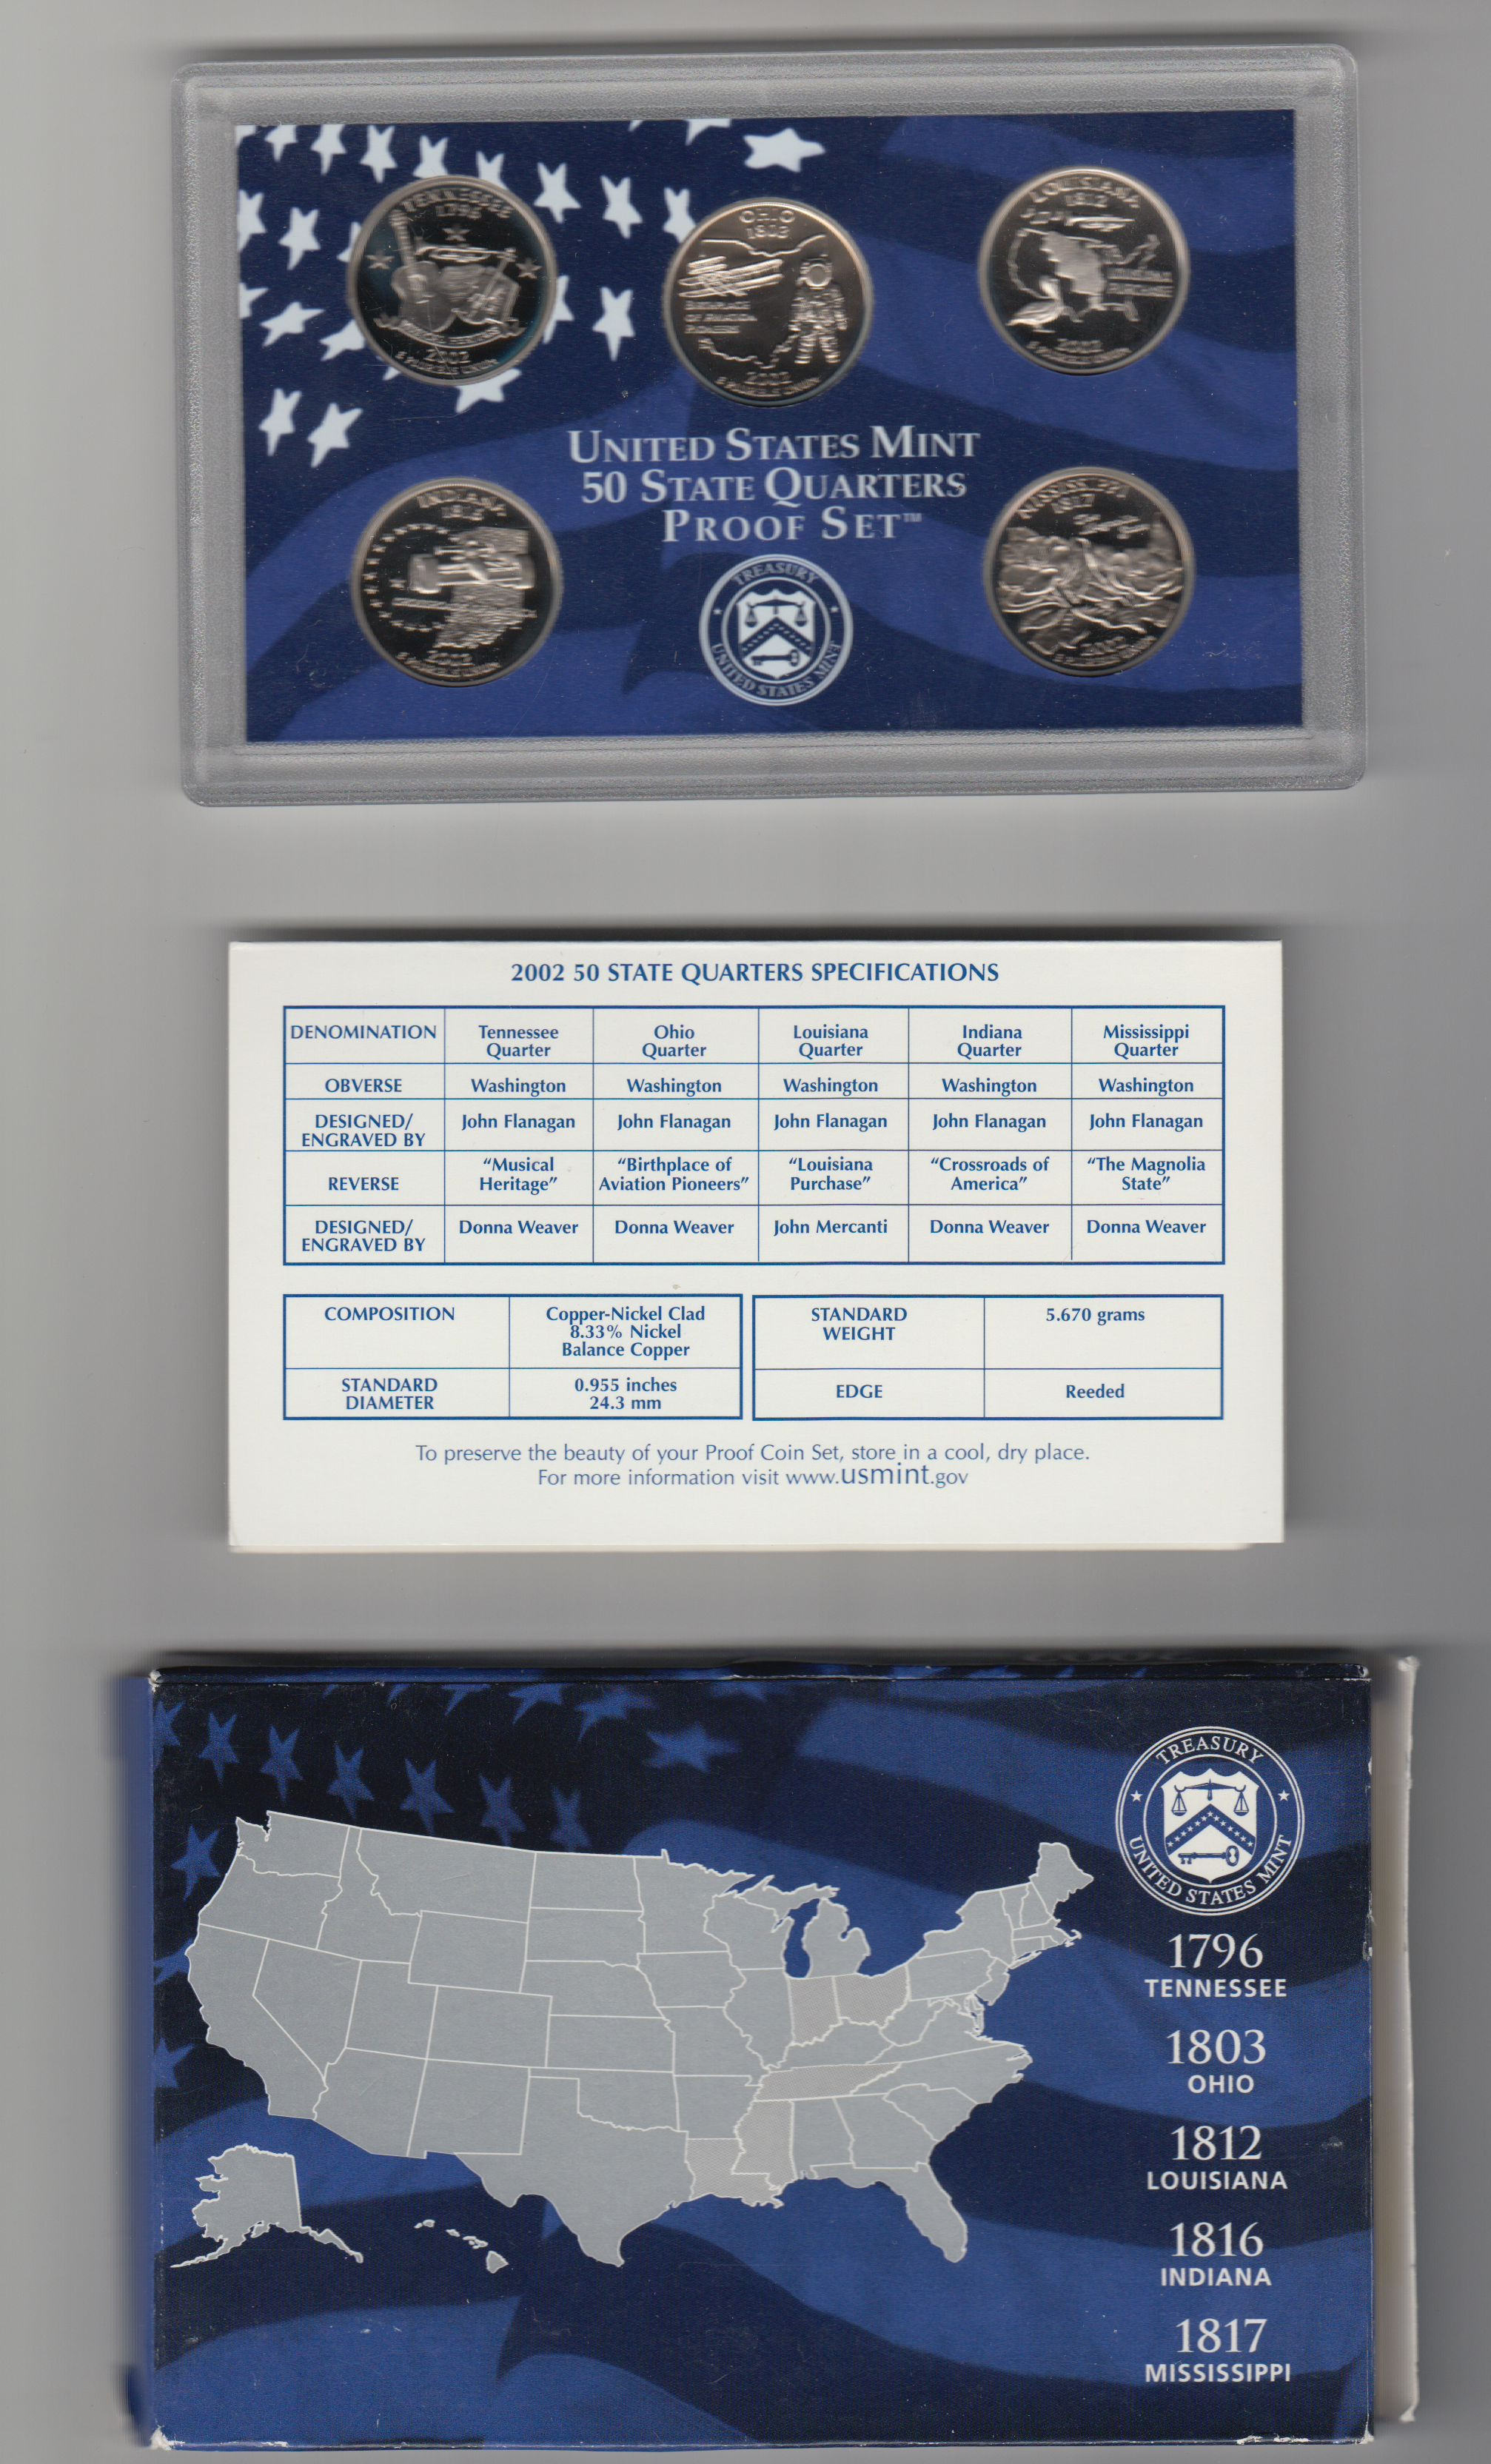 Best Of Value Of Usa 5 Coins 50 State Quarters Proof Set U S State Quarter Set Value Of Unique 5 Coins 50 State Quarters Proof Set Us Mint 2000 State Quarter Set Value